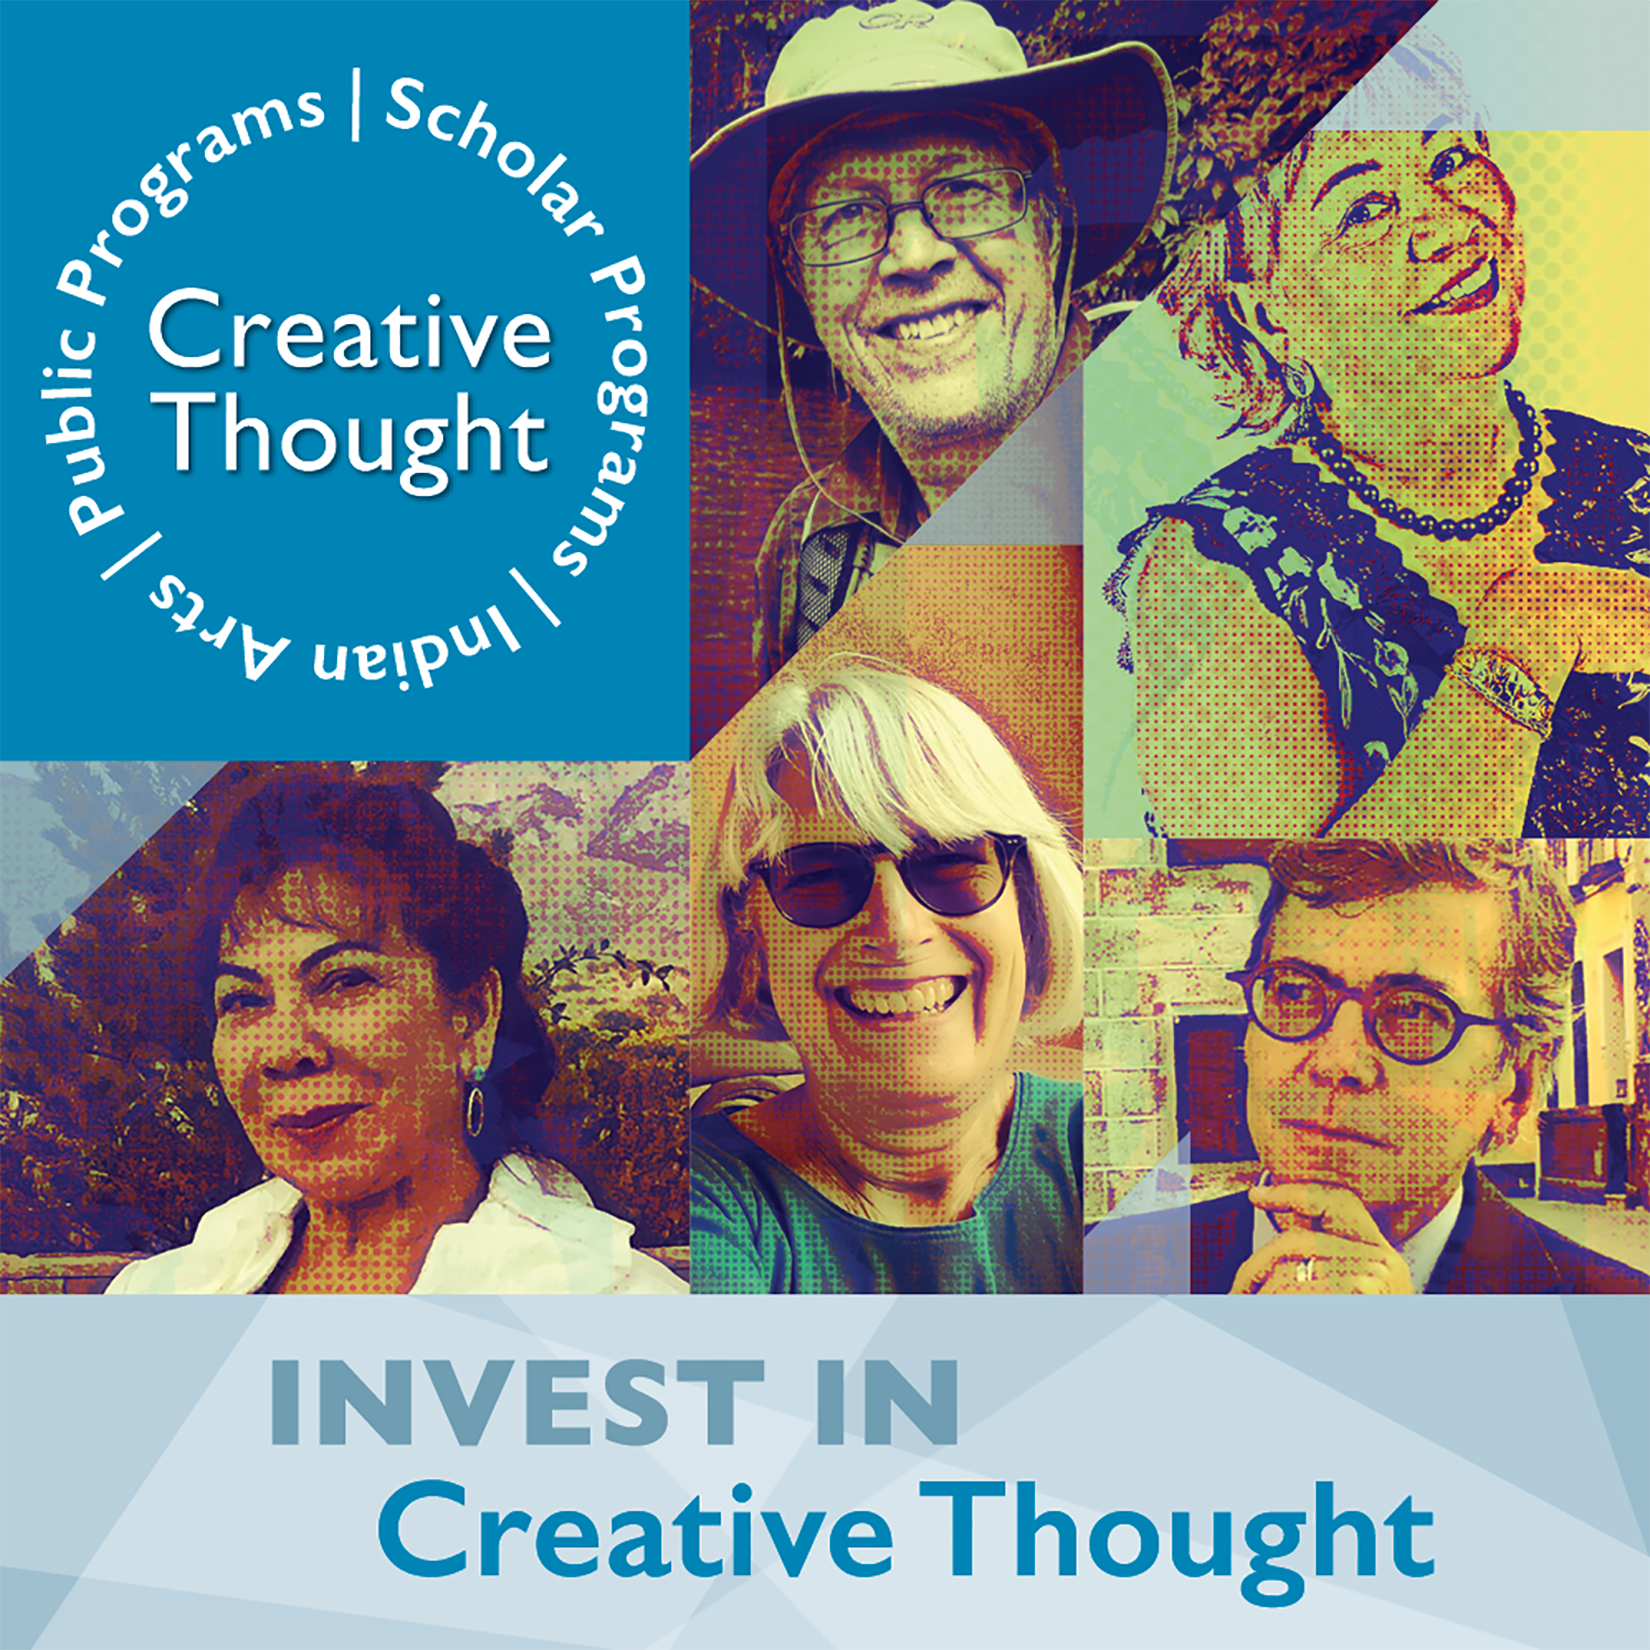 SAR 2020 fall appeal mobile graphic invest in creative thought with anthropology scholars and native American artists